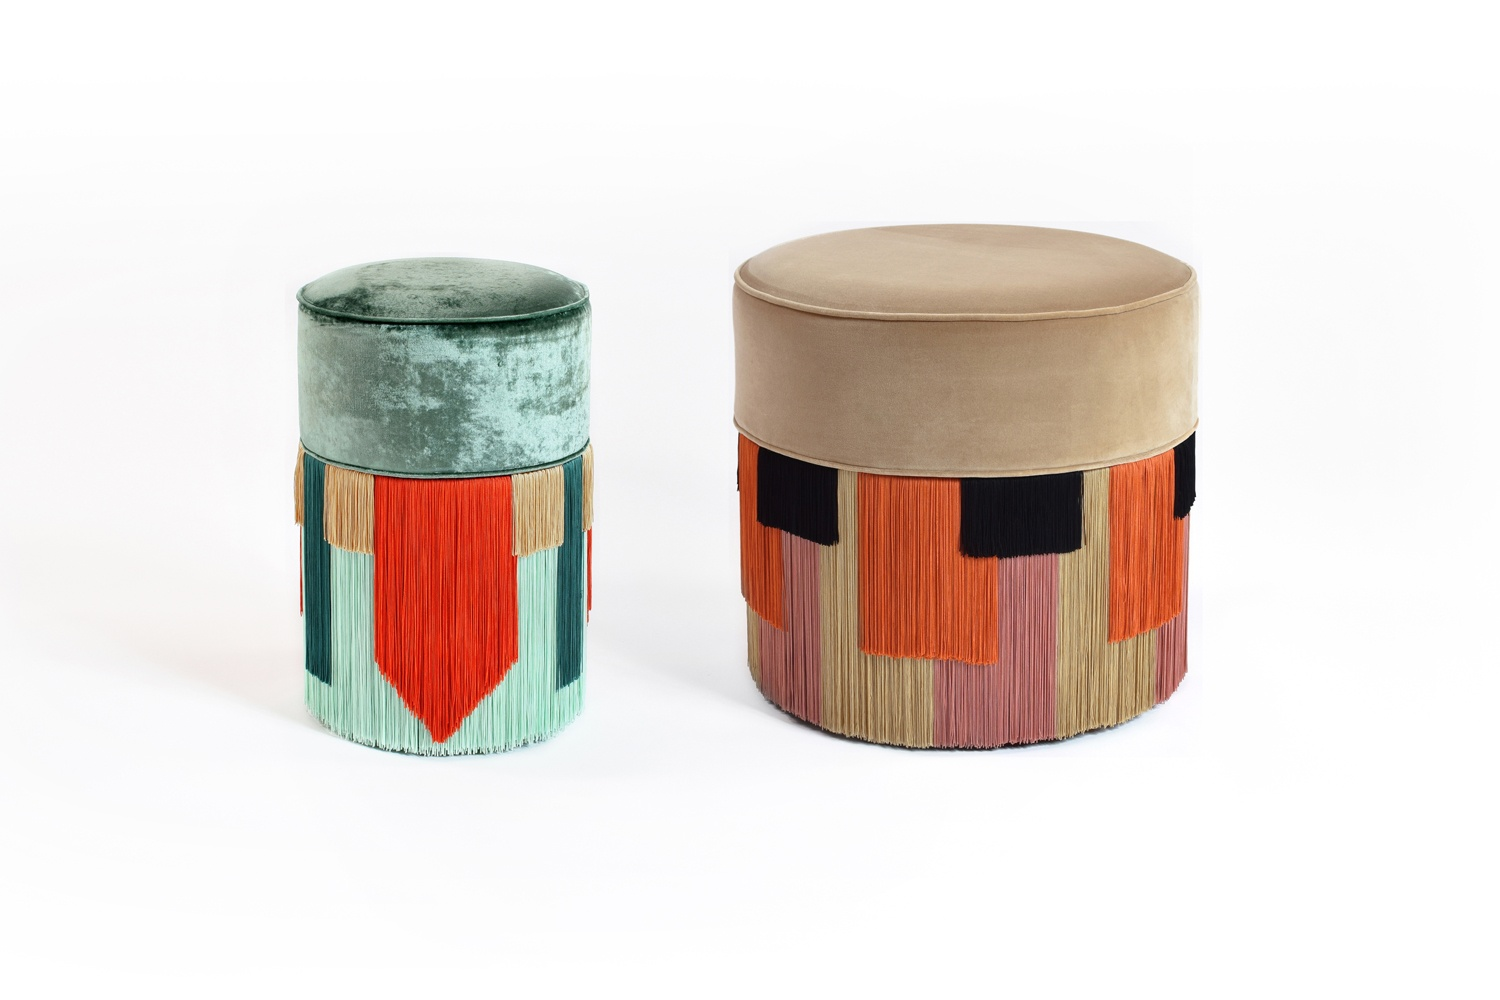 lorenza-bozzoli-presents-couture-pouf-for-luisa-via-roma-home-yellowtrace-03_01